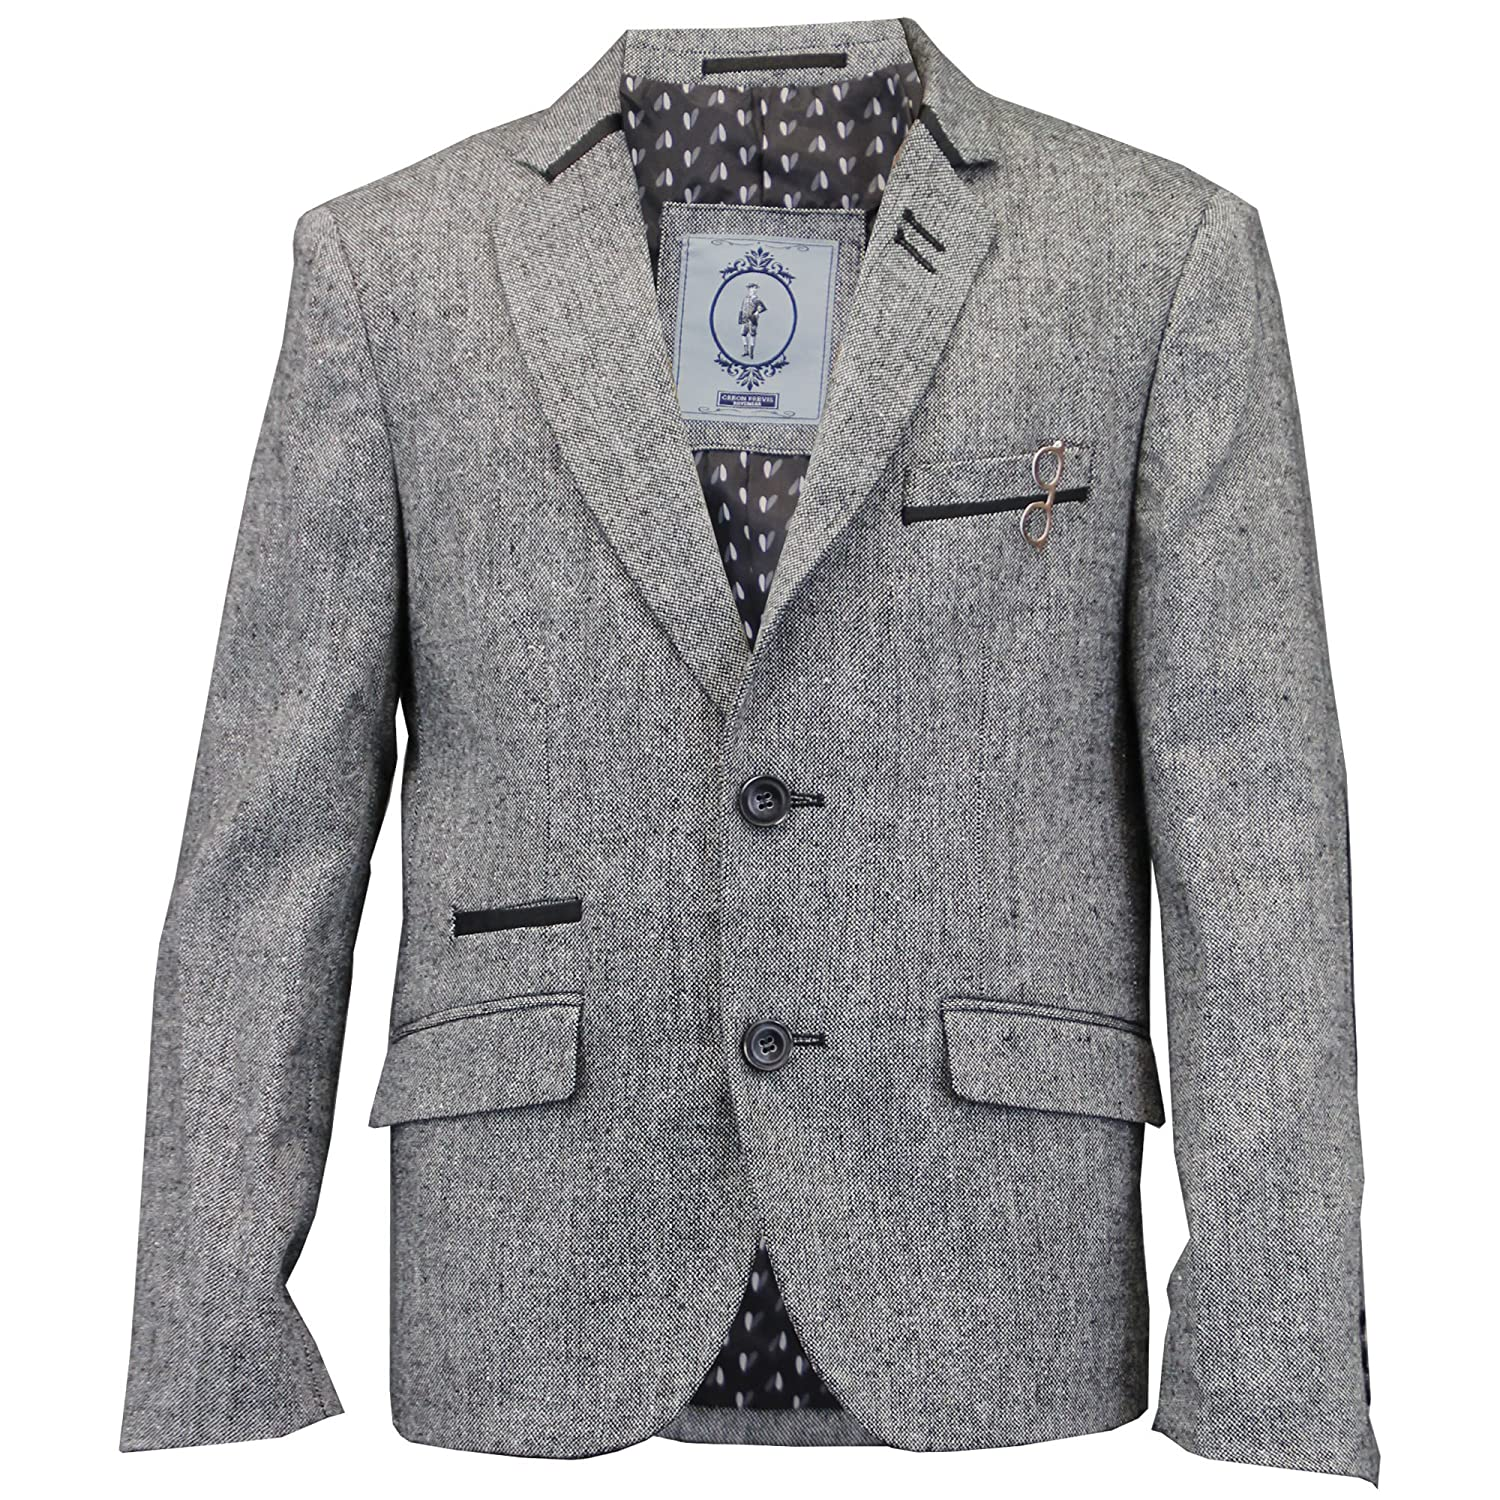 Boys Kids Wool Mix Herringbone Tweed Blazer Patches Jacket By Creon Previs